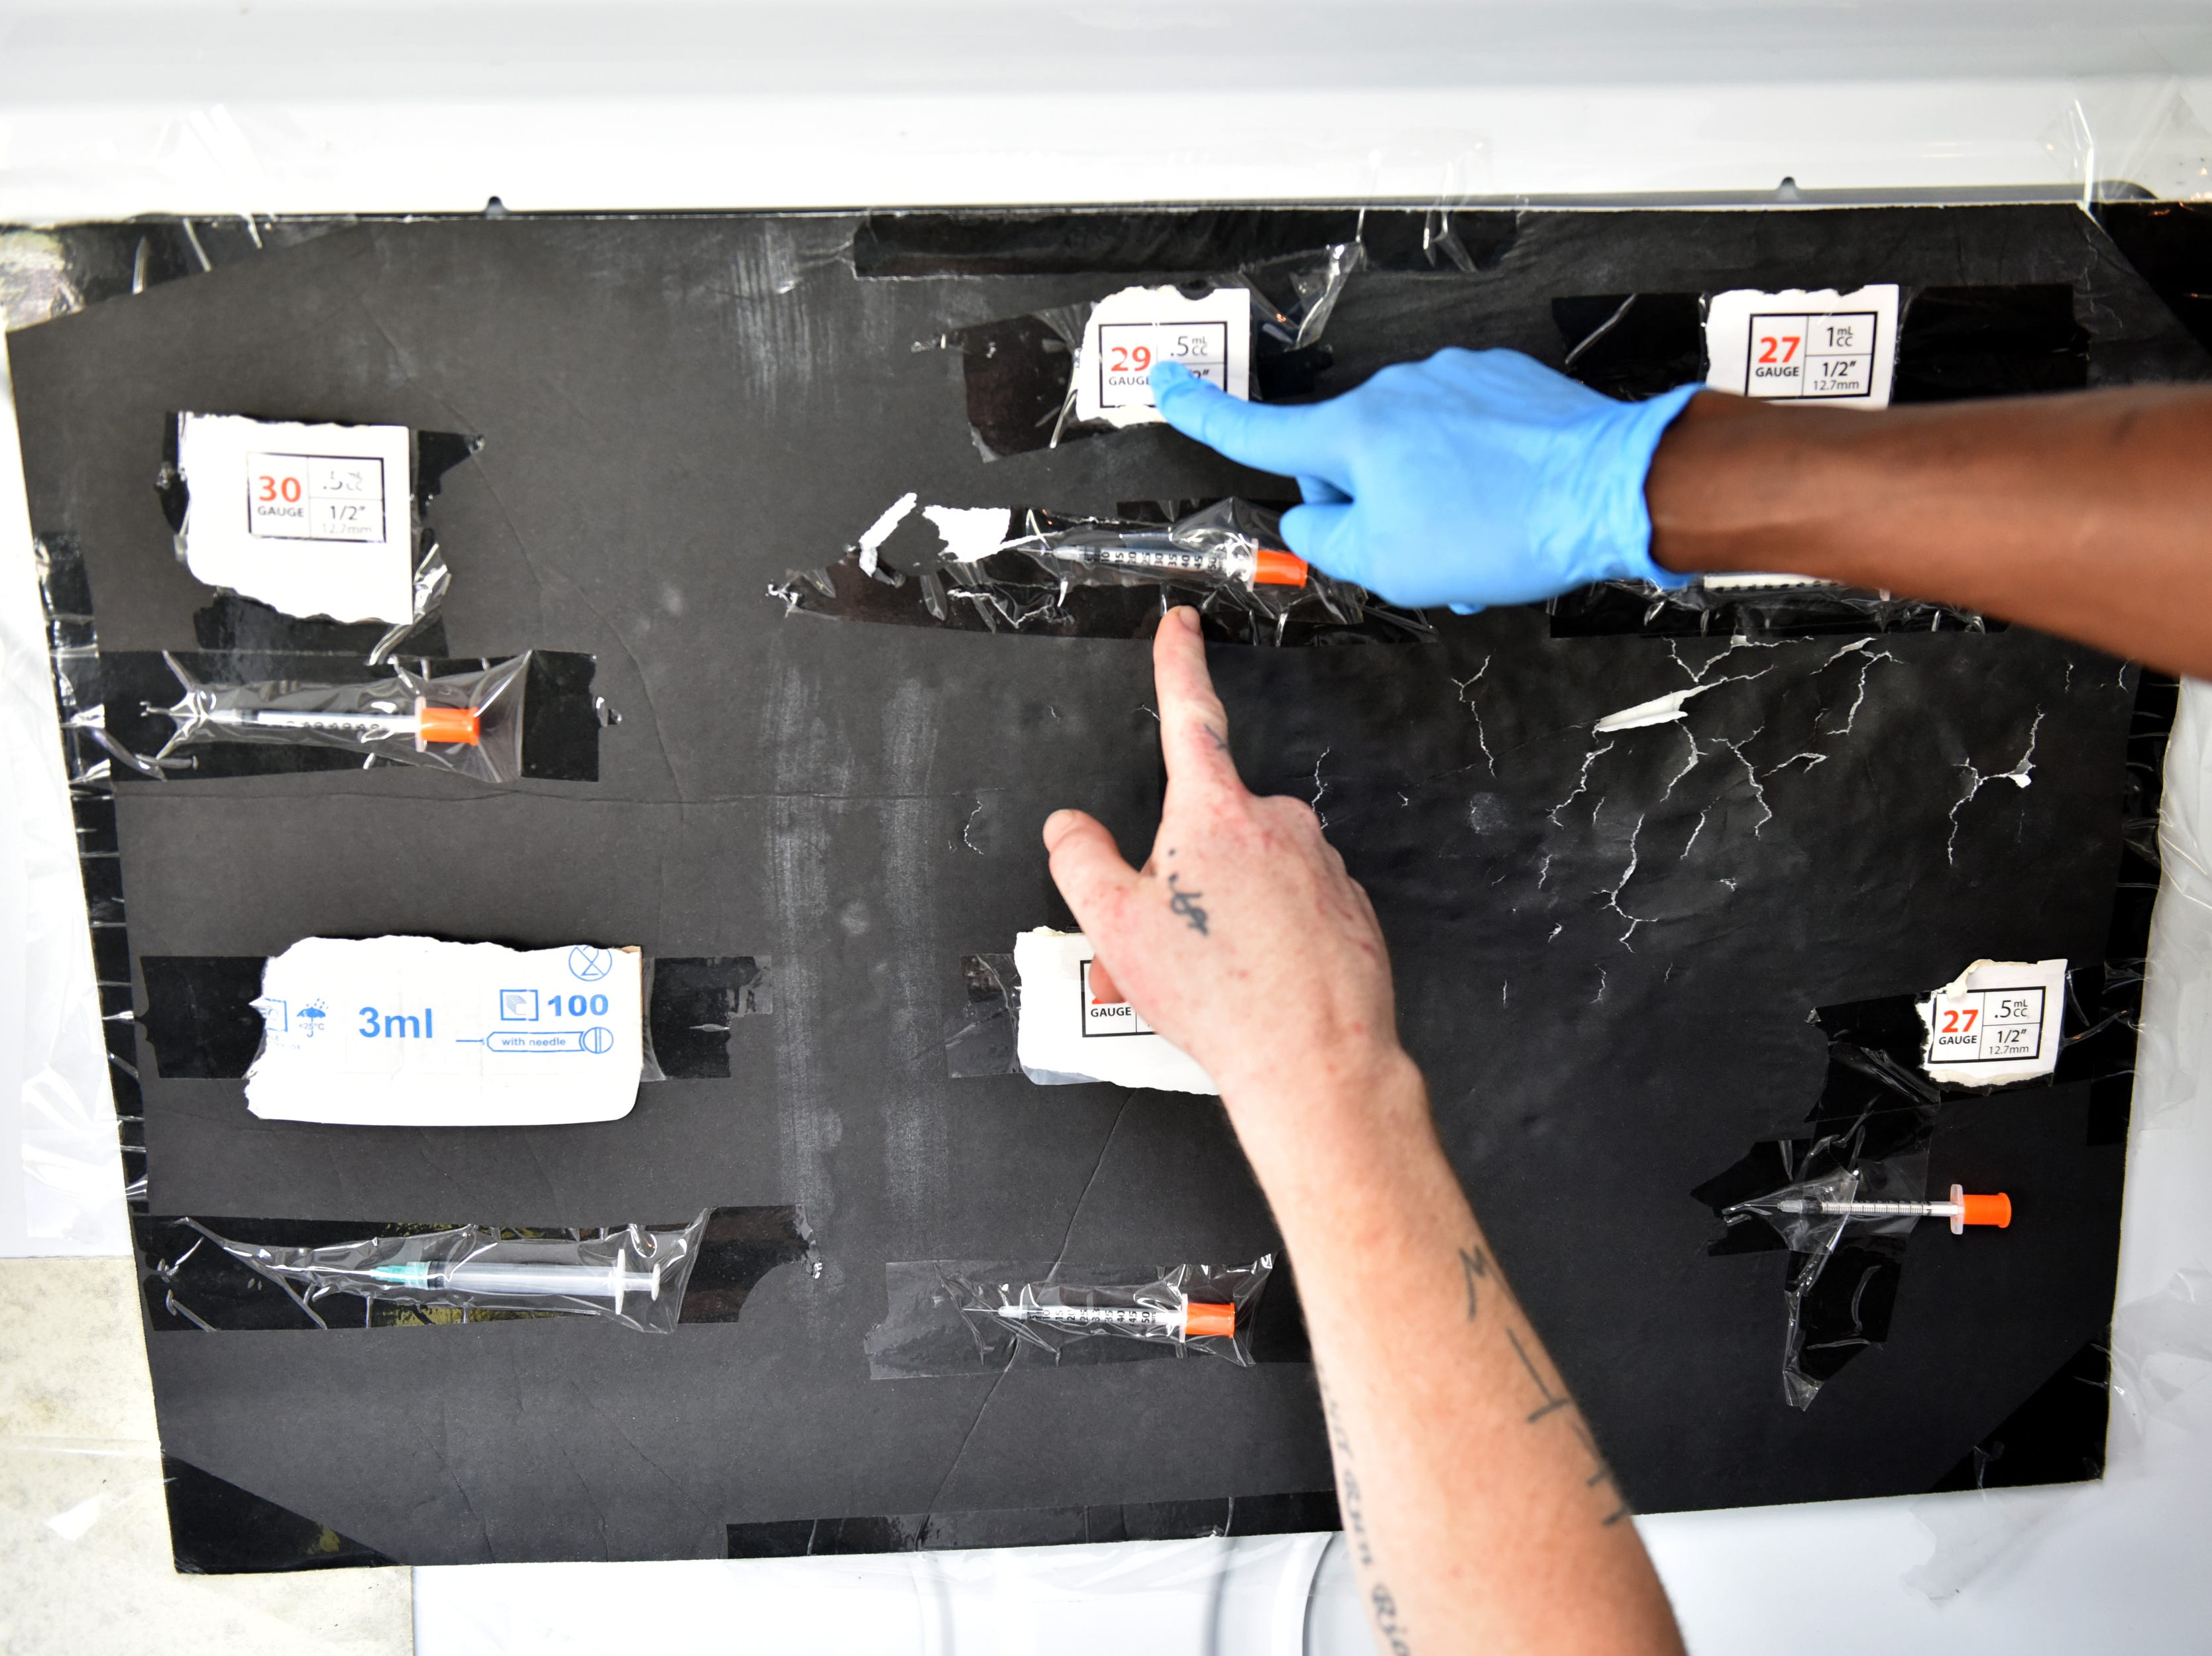 A client points to syringe he would like to have for his exchange. A van parked in the Walgreen's parking lot provides clean needles in exchange for dirty ones twice a week in Paterson on Friday July 27, 2018. For every used syringe brought in, the harm reduction specialists with Hyacinth Foundation provides a new sterile syringe. The van is stocked with syringes of different sizes, alcohol wipes, constriction bands, cooking cups, water, strips to test for fentanyl, and other products to safely inject heroin.